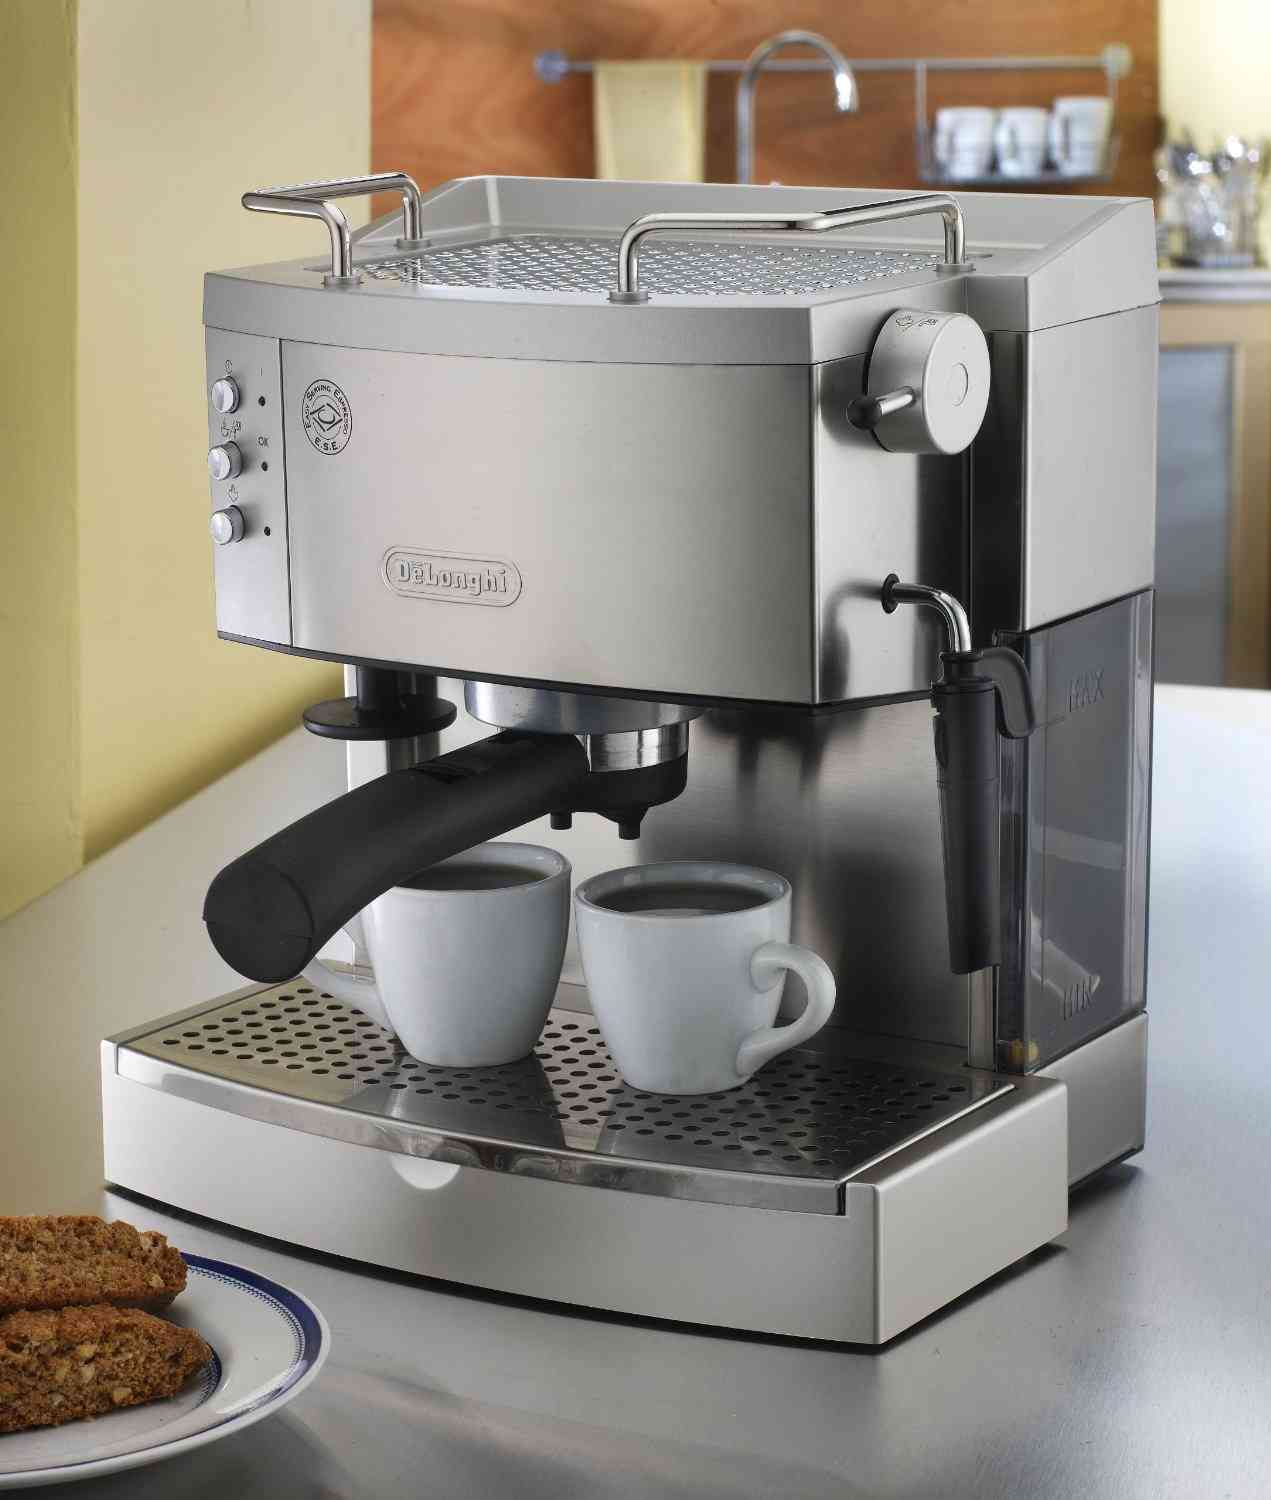 Which Are The Best Espresso Machines Under 200 Usd